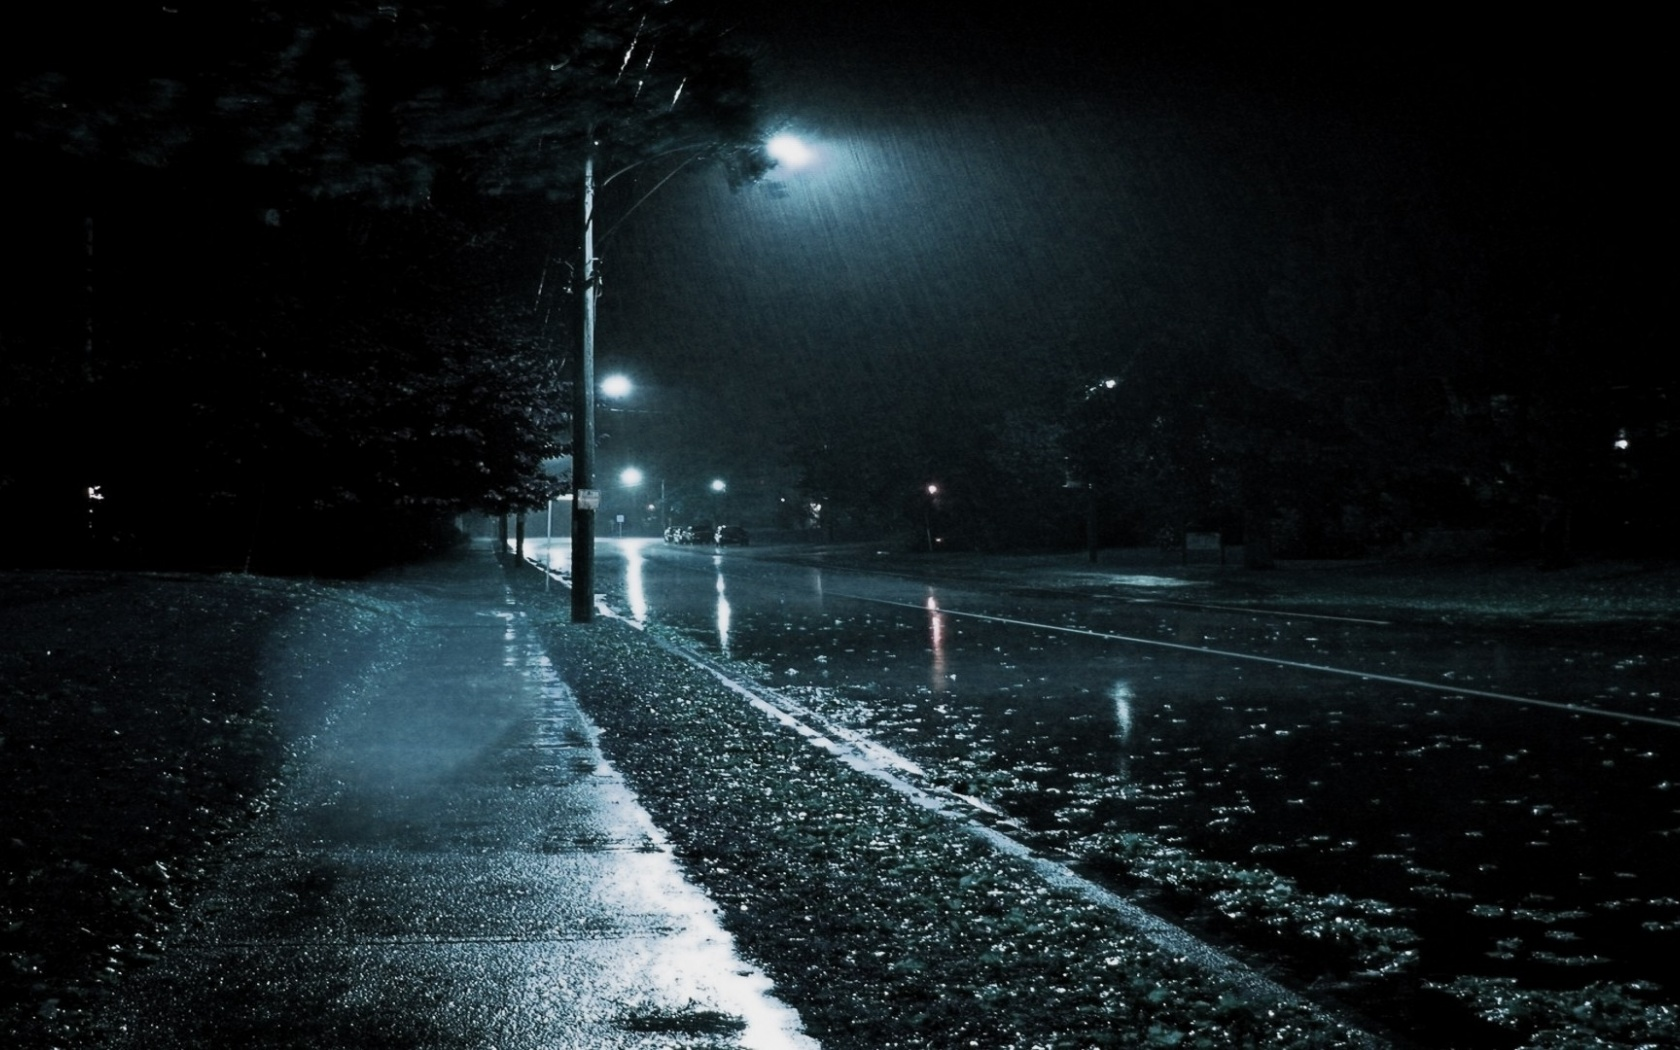 rainy night wallpapers background - photo #4